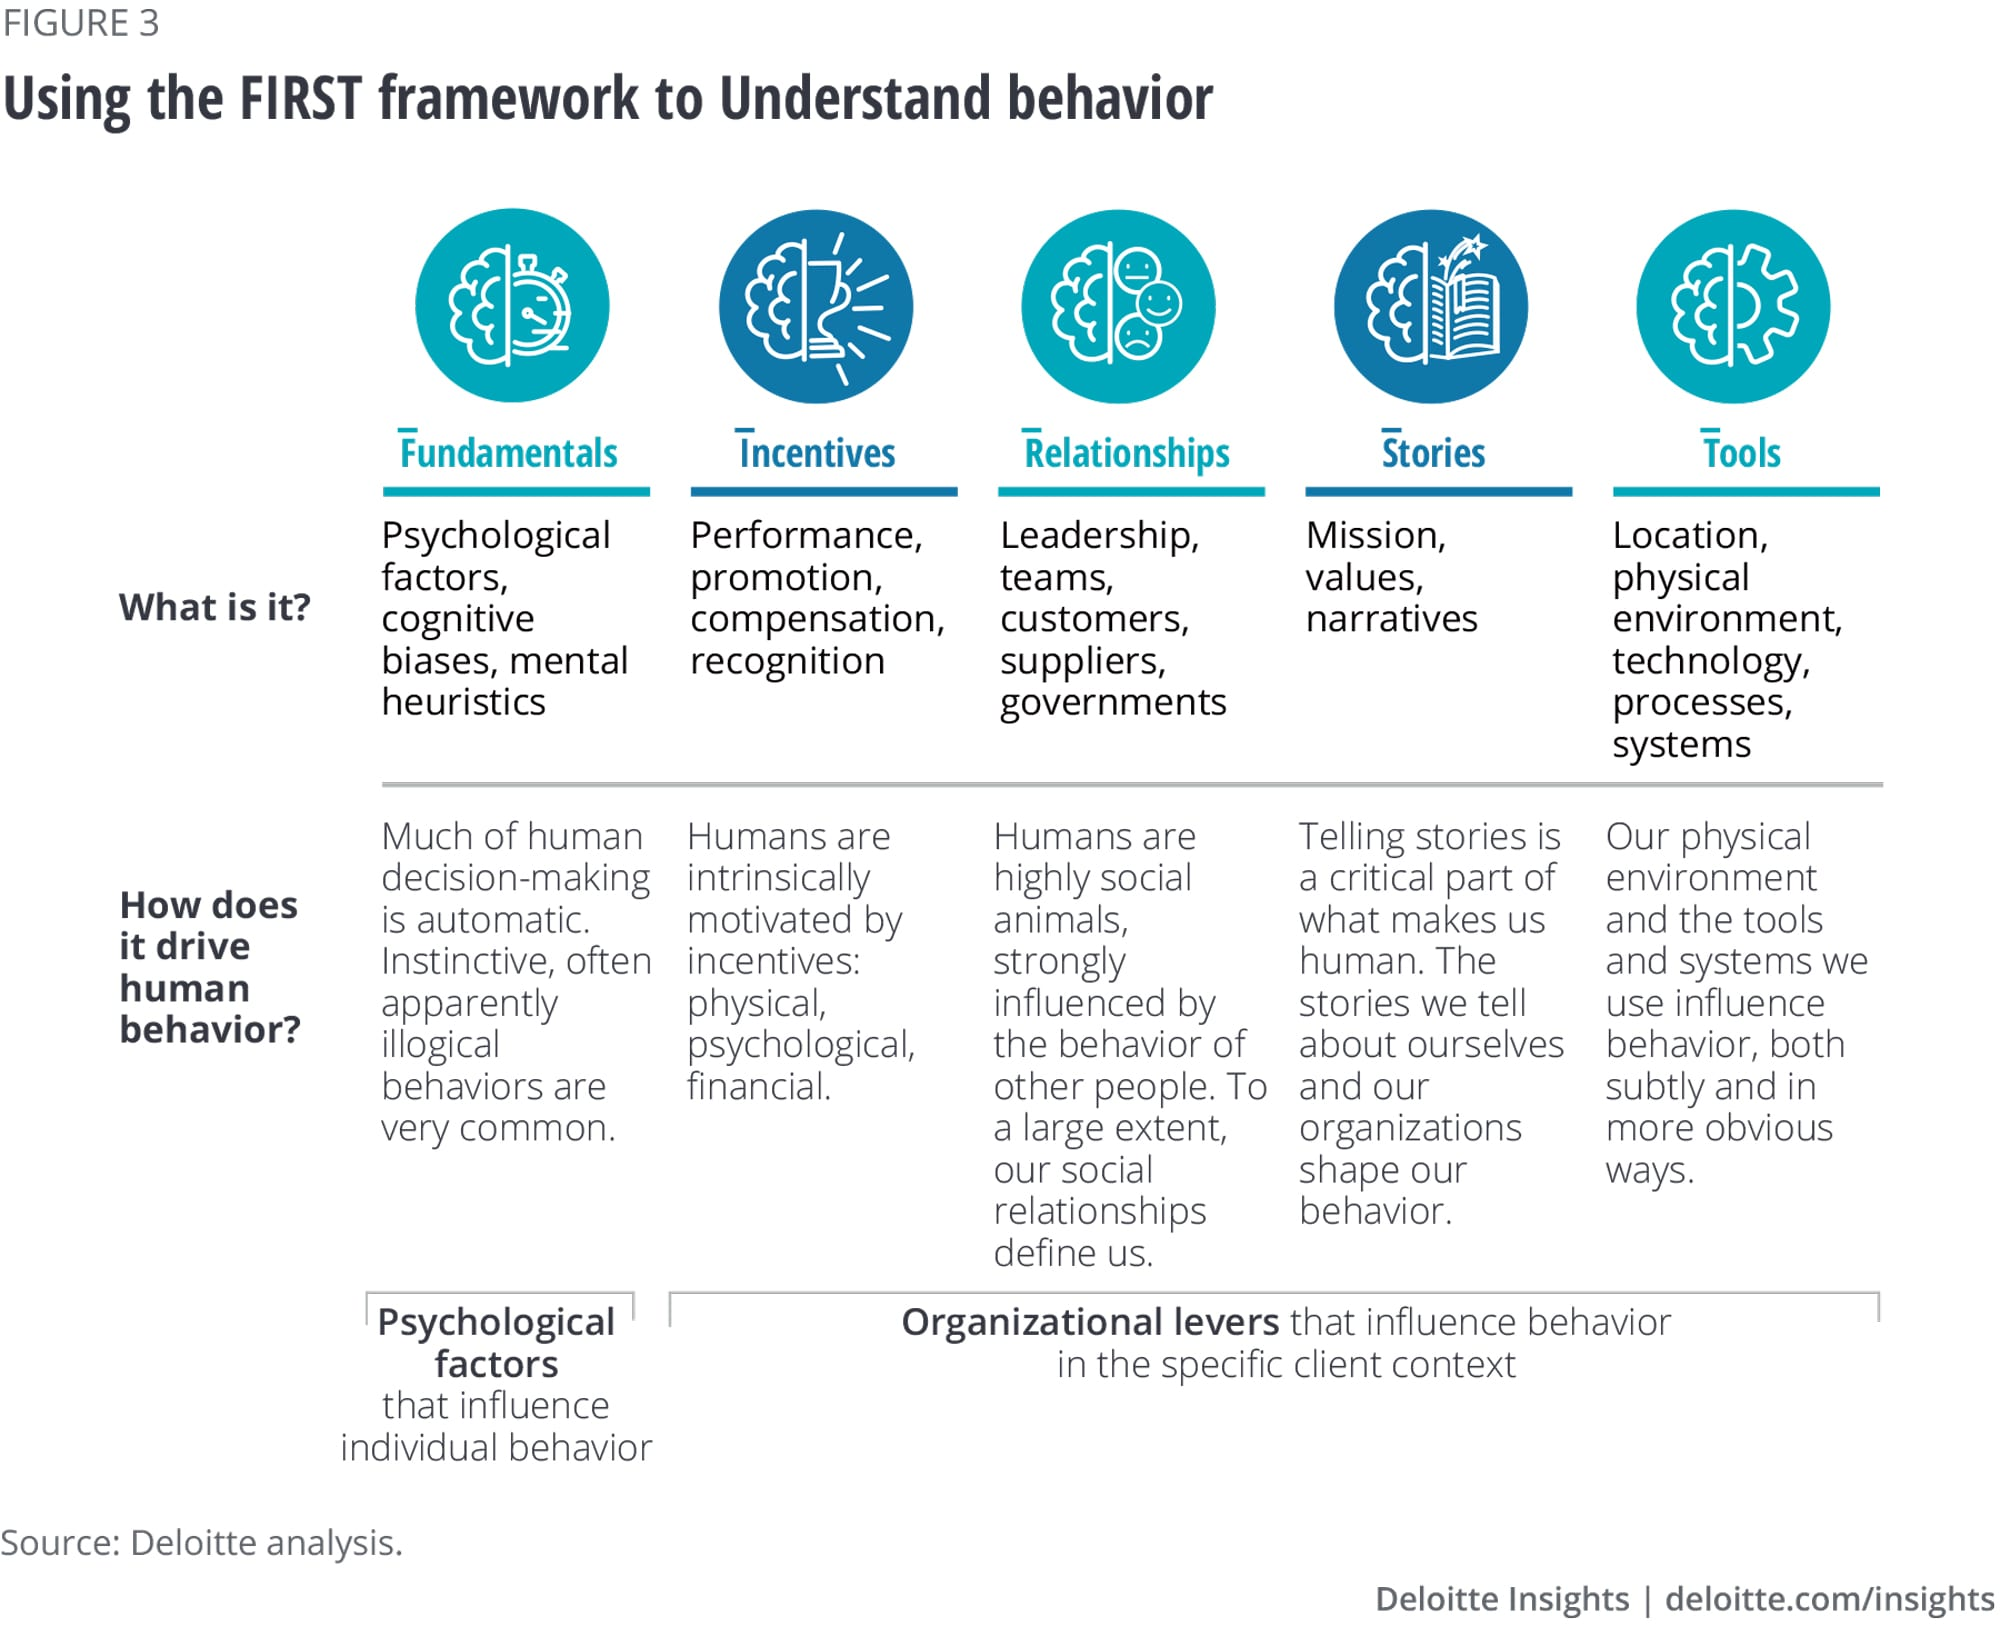 Using the FIRST framework to understand behavior